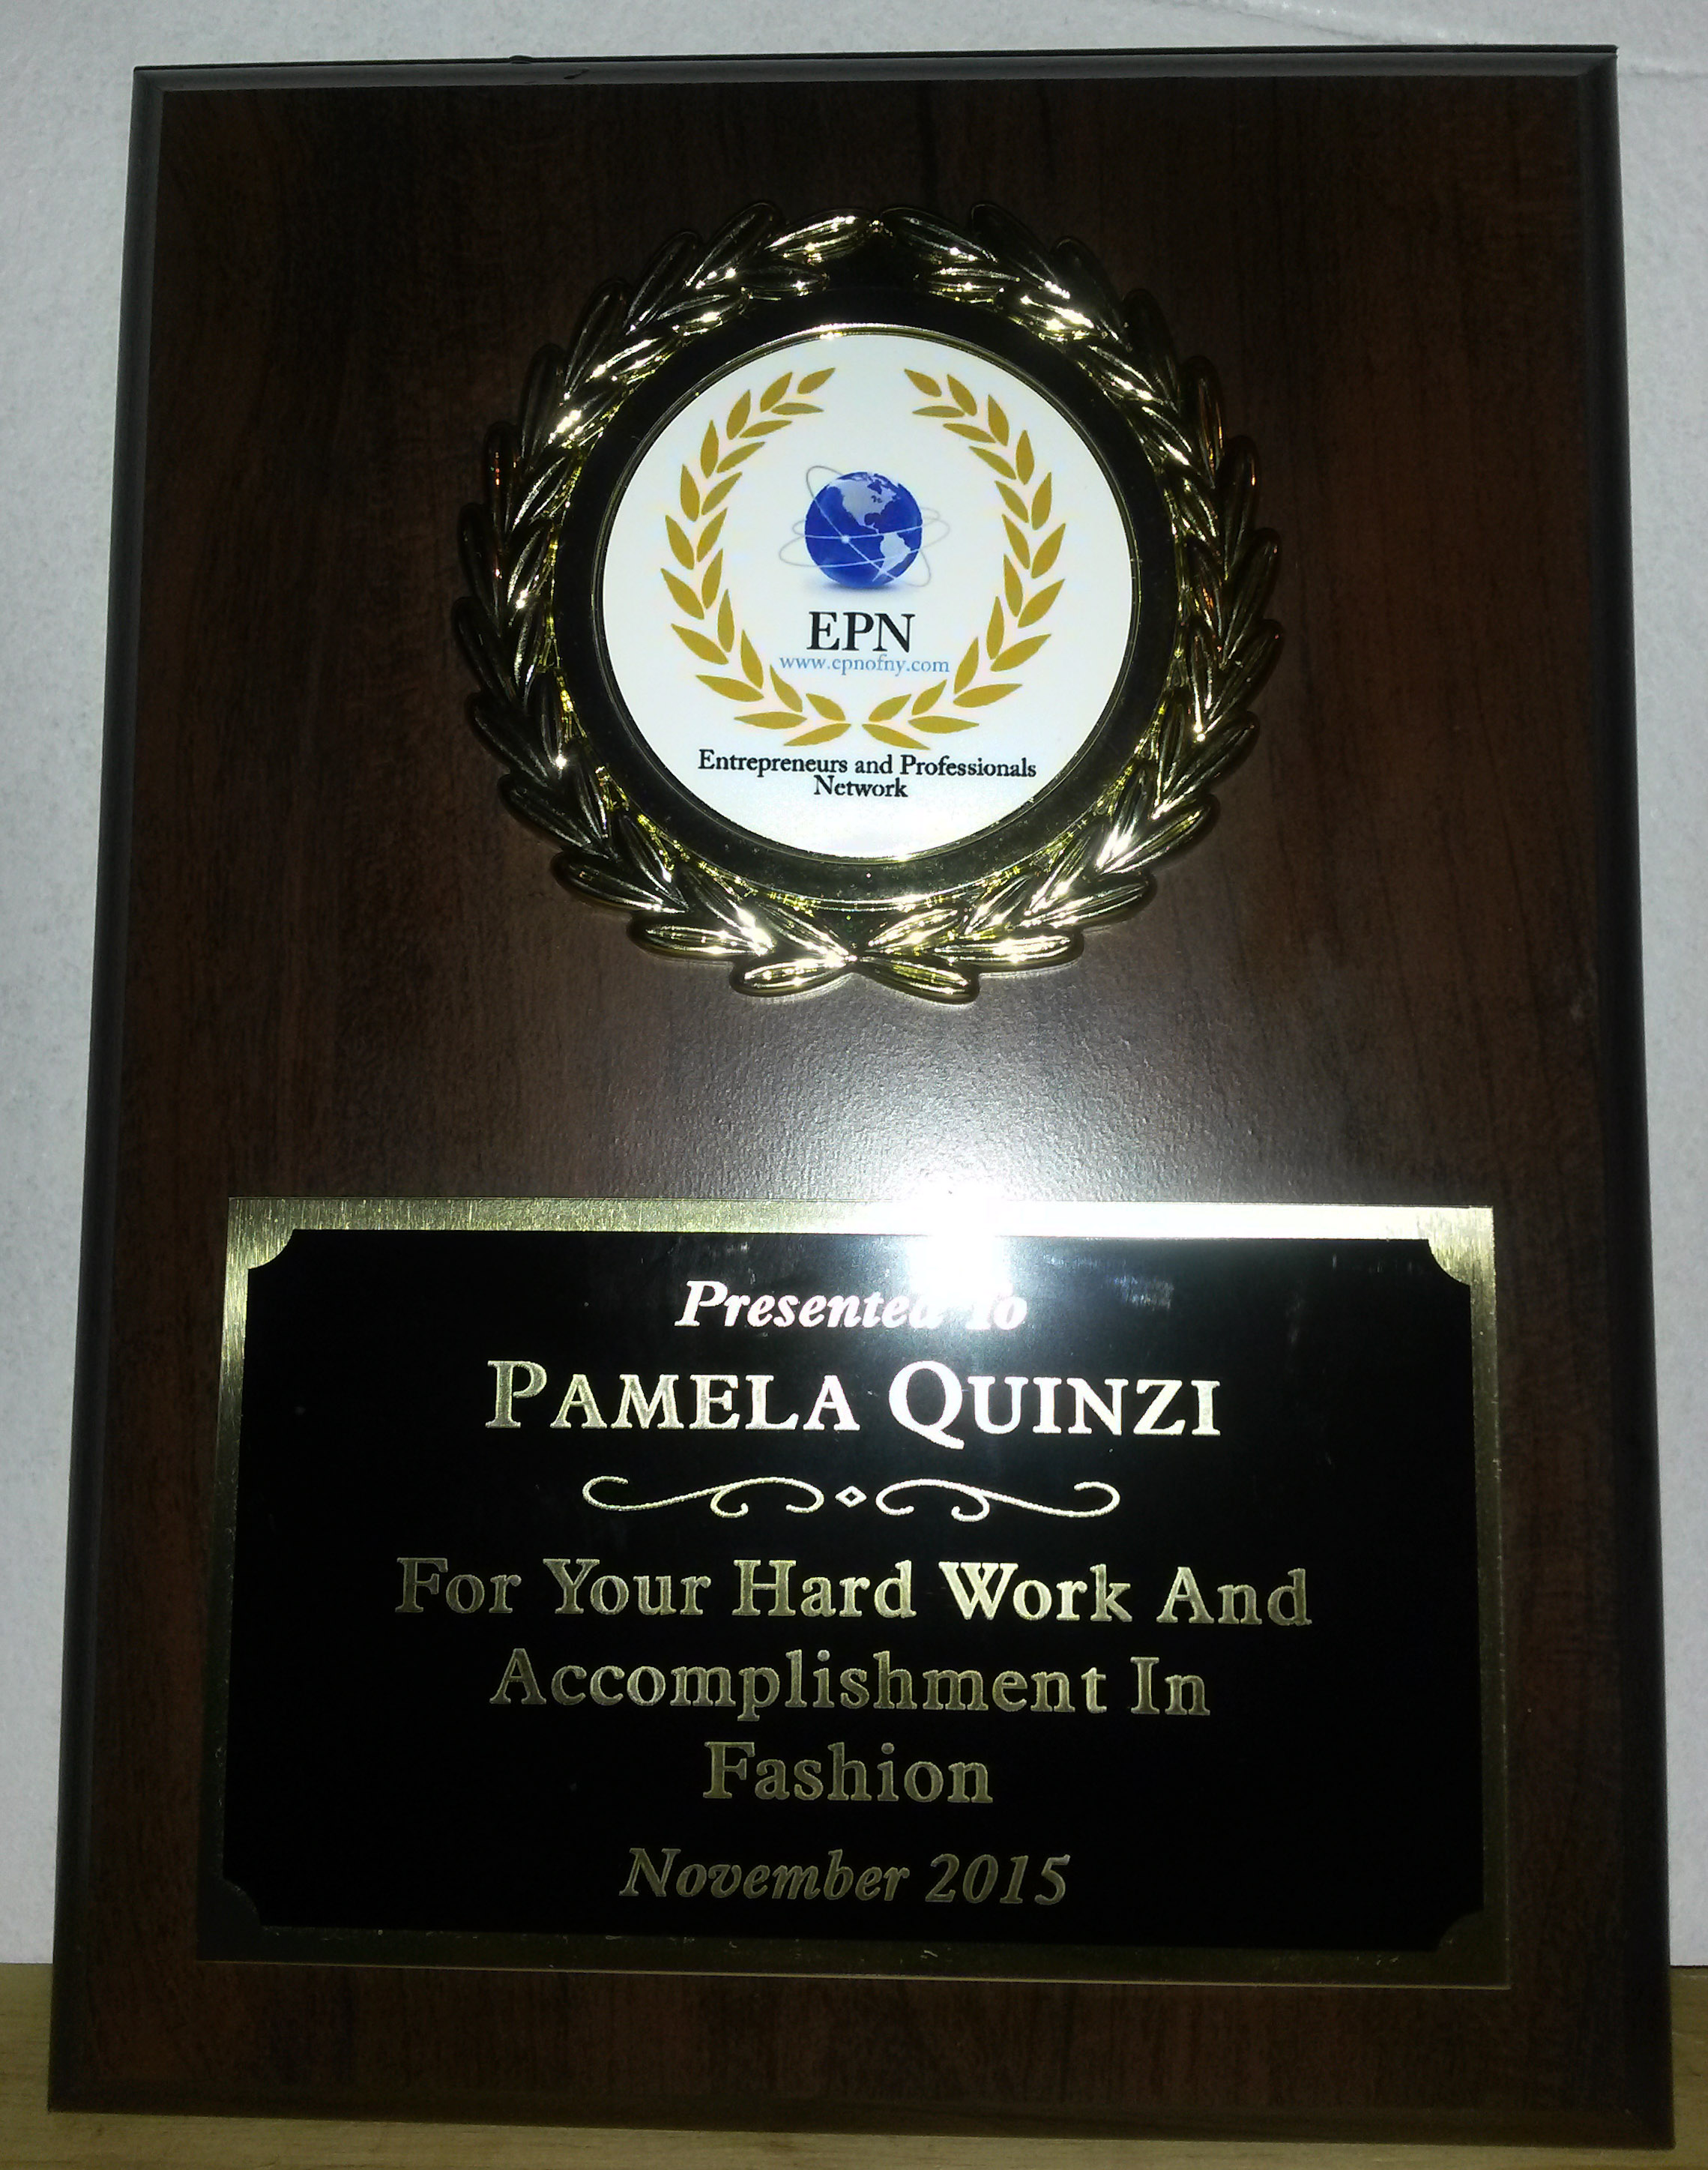 awards pamela quinzi 2015 award from epn entrepreneurs and professional network for the hard work and accomplishment in